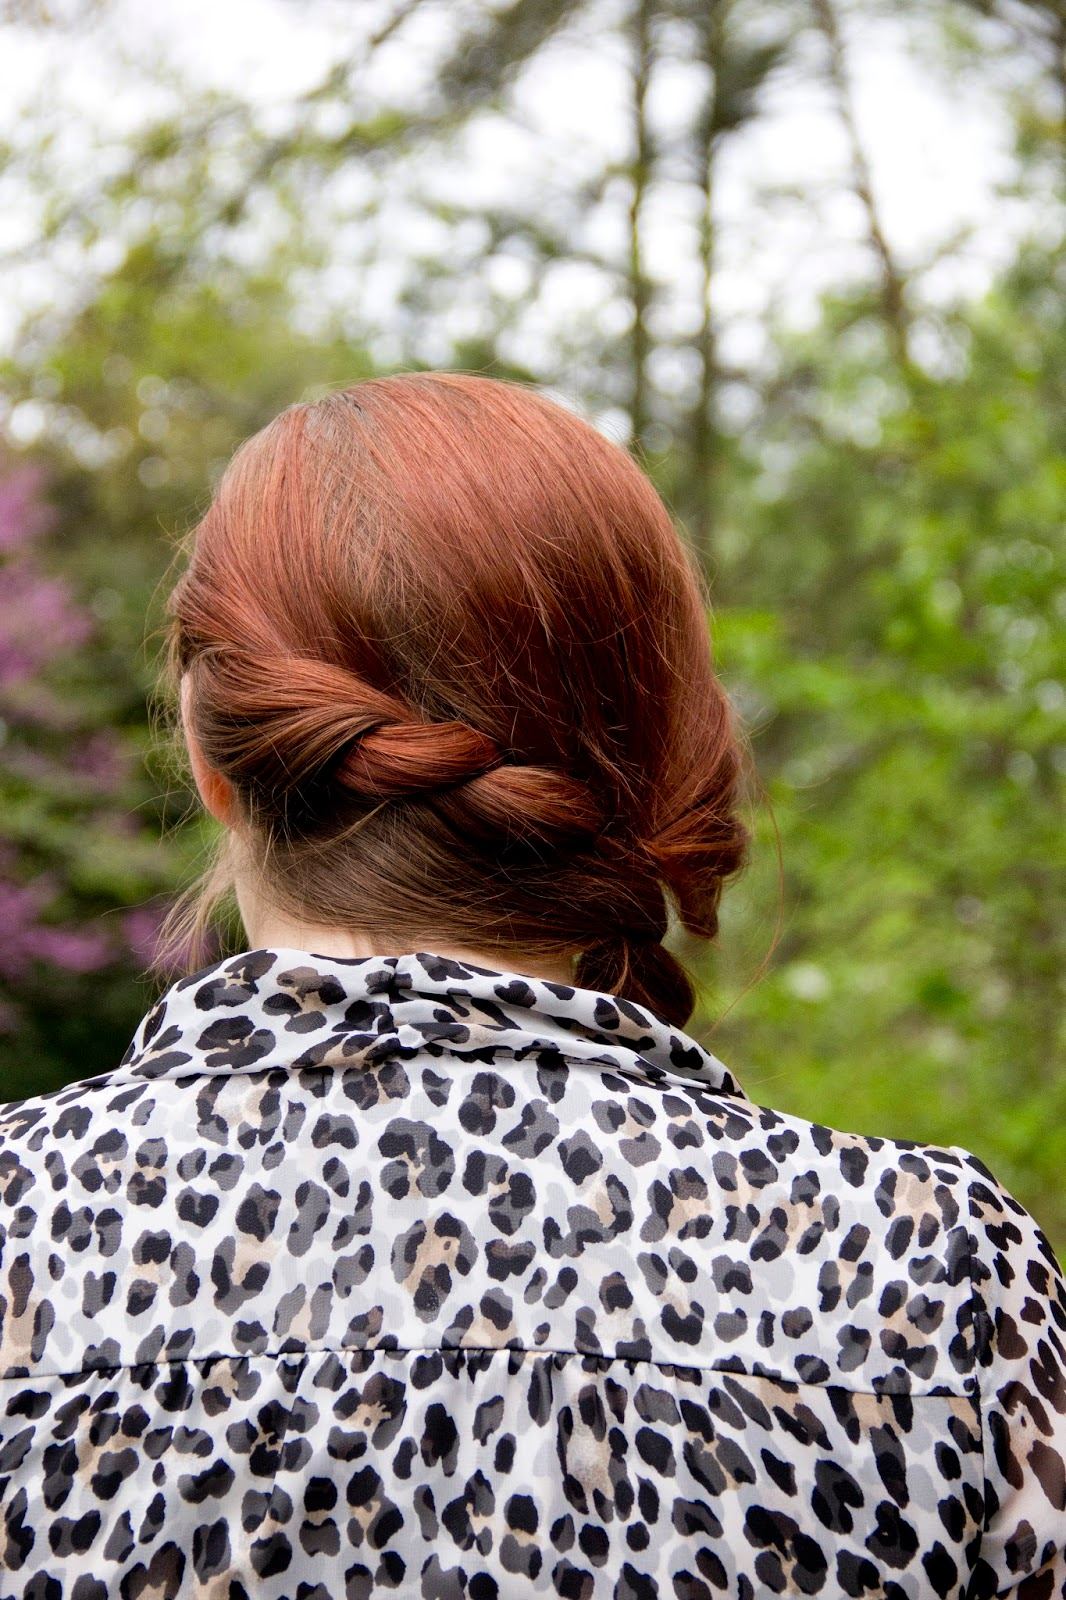 Hair Tutorial: Preventing the Side Braid Droop